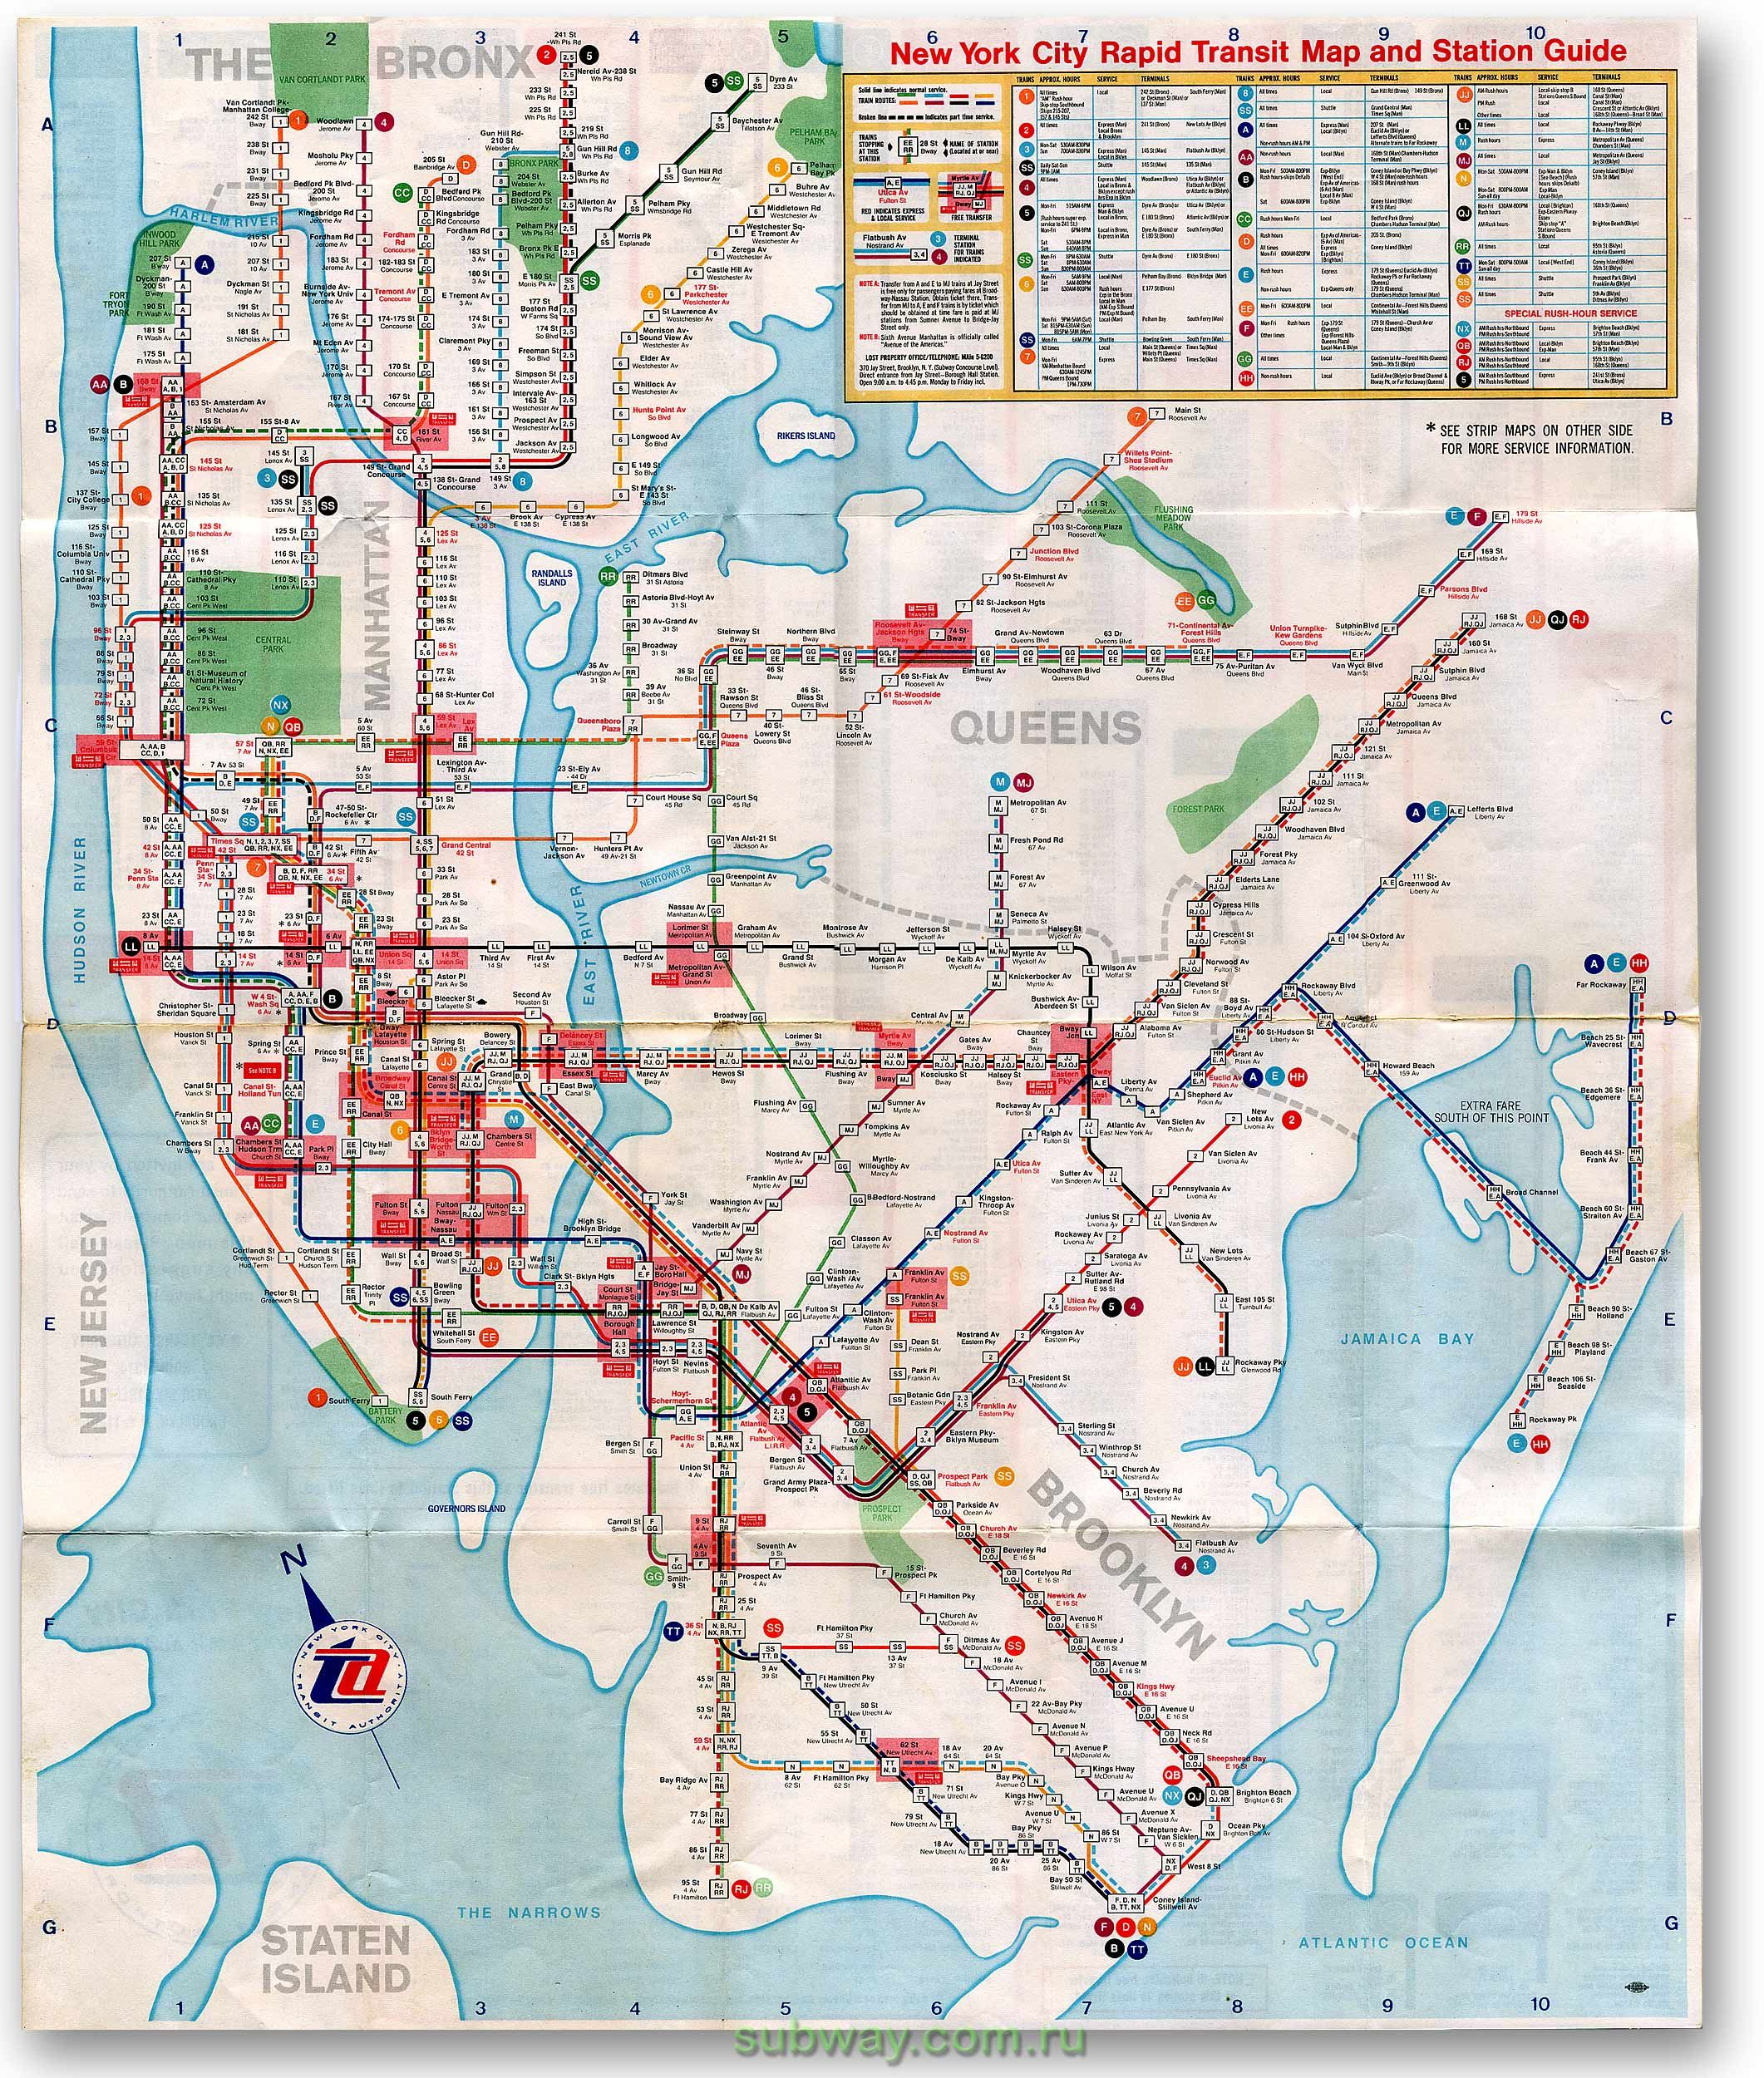 Nyc Subway Map Over Street Map.1967 Subway Map Chrystie Street Edition Fun City 4ever Nyc